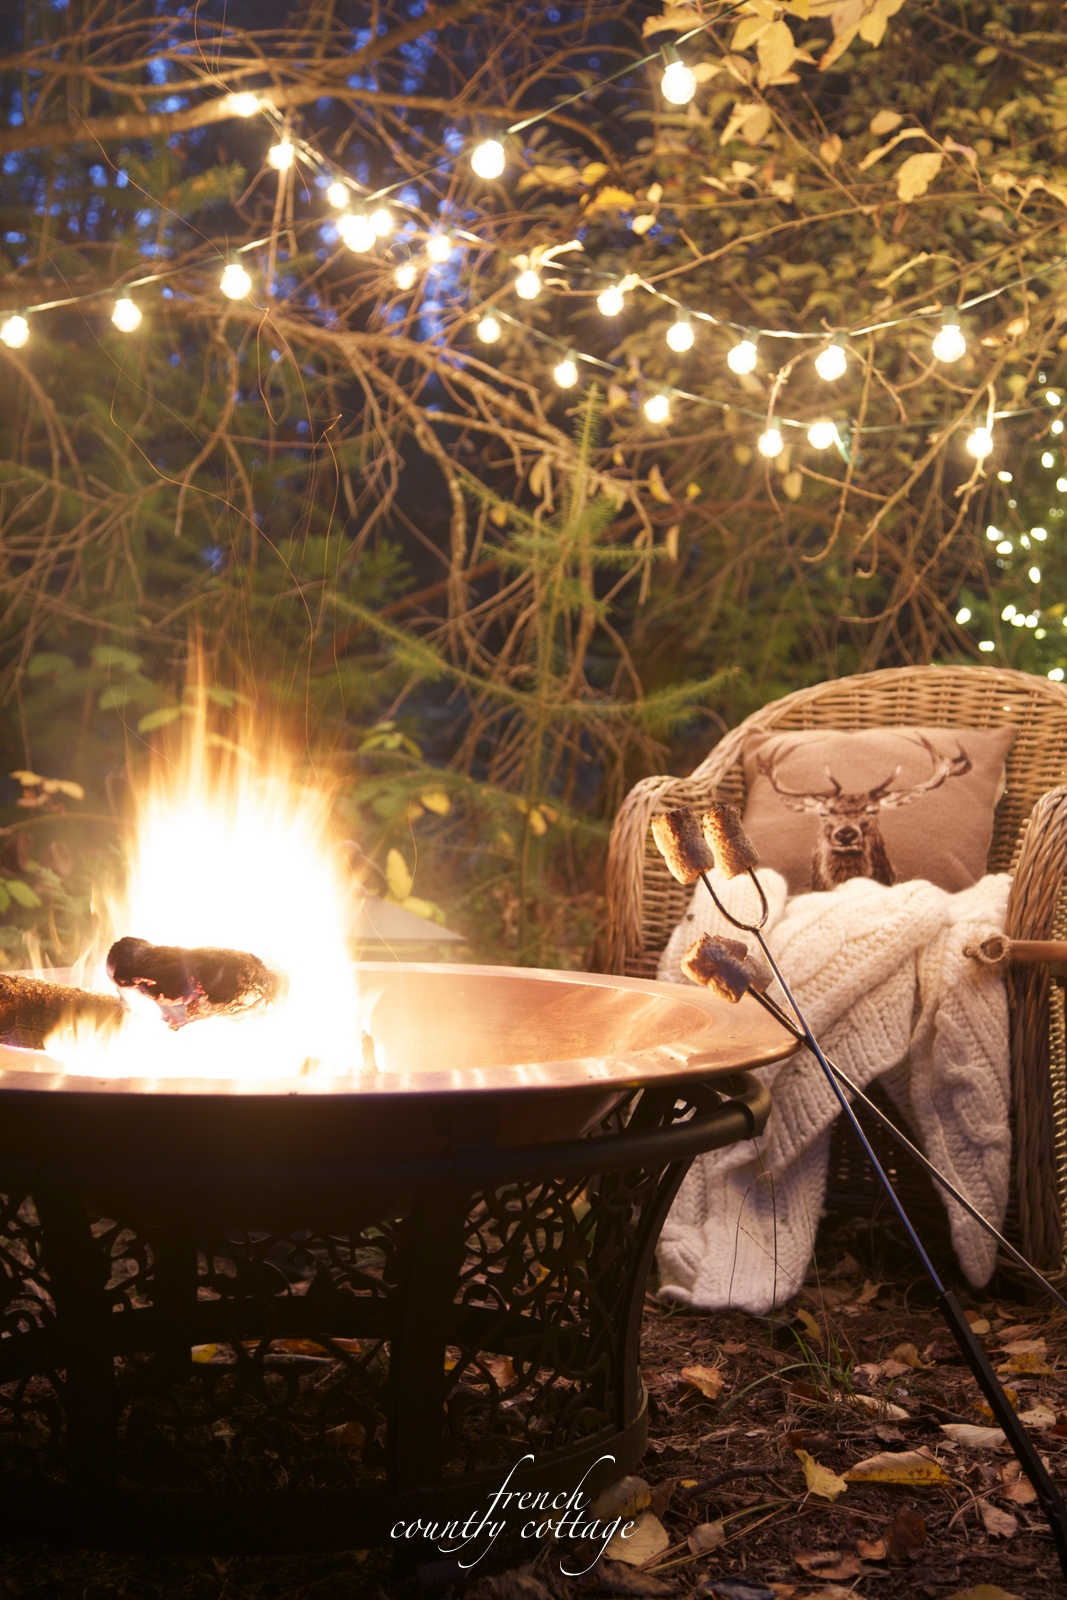 French country cottage christmas home tour french for French country outdoor lighting